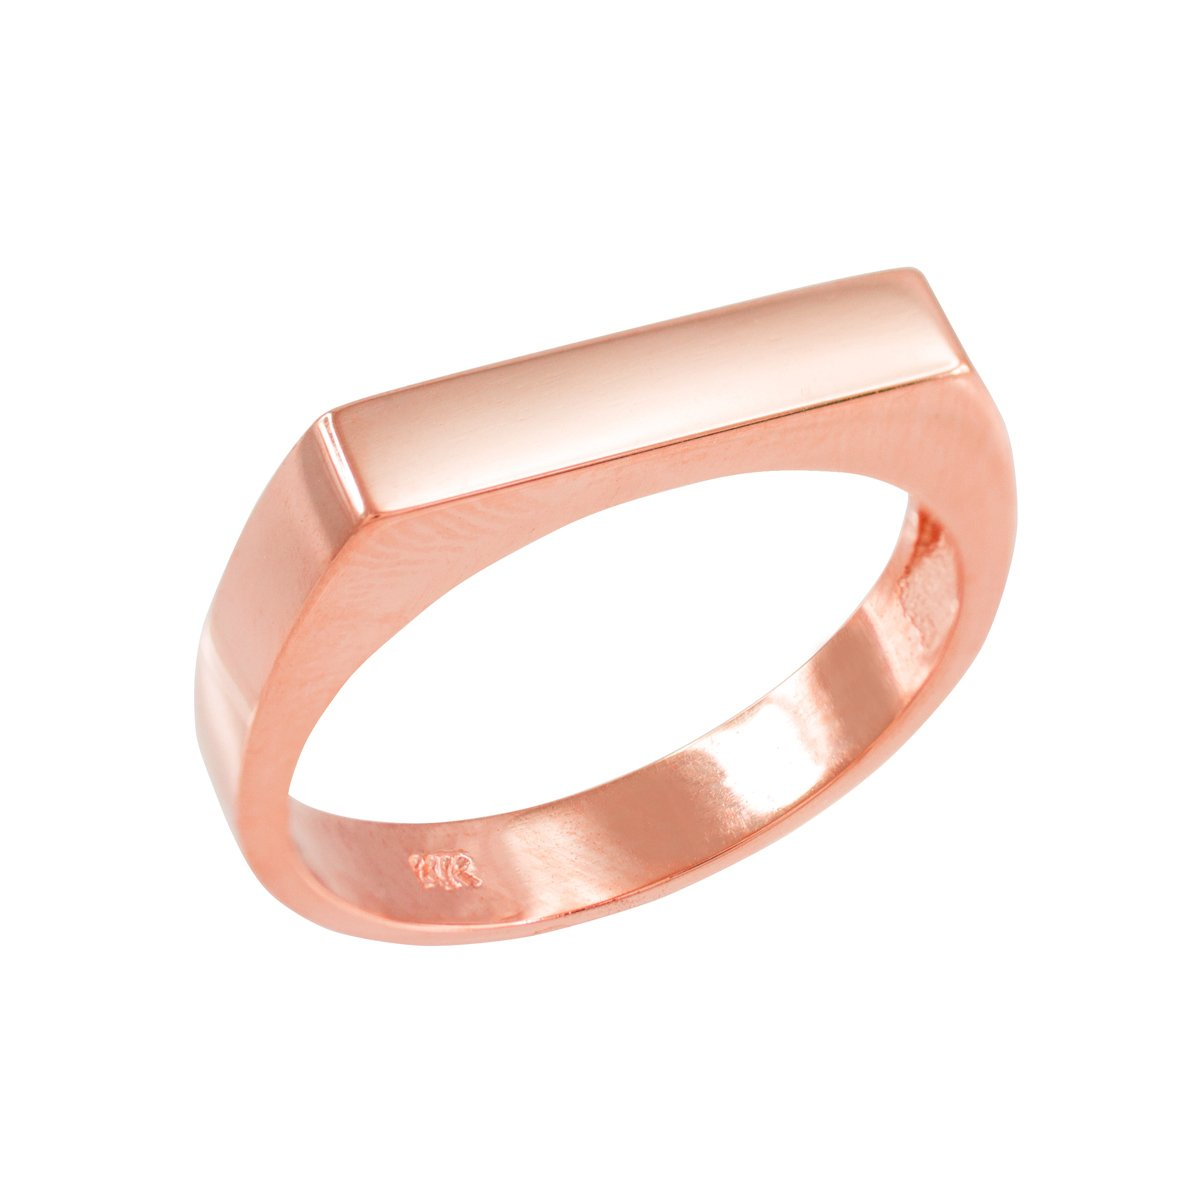 Stackable 10k Rose Gold Custom Engravable Flat Top Signet Ring (Size 5.25)